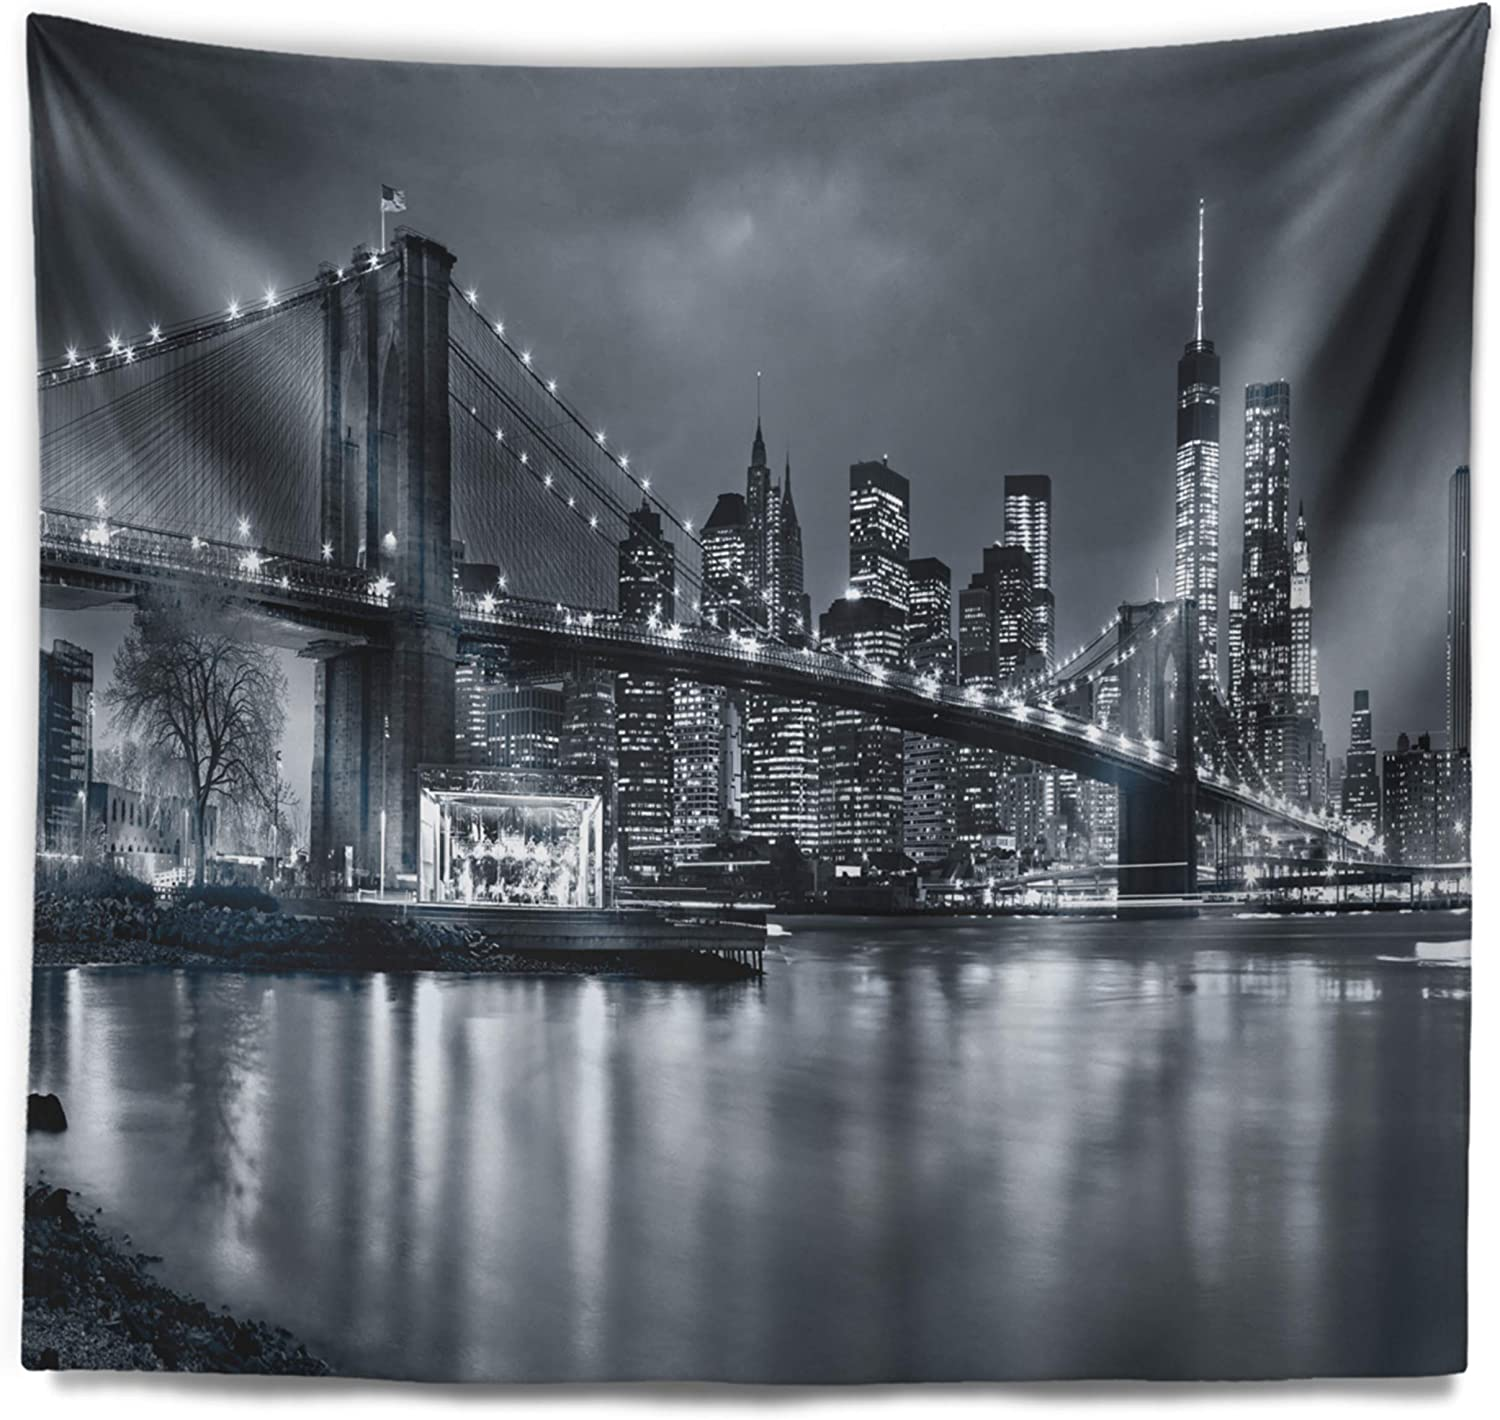 60 in x 50 in Designart TAP9959-60-50  Panorama New York City at Night Cityscape Blanket D/écor Art for Home and Office Wall Tapestry Large Created On Lightweight Polyester Fabric